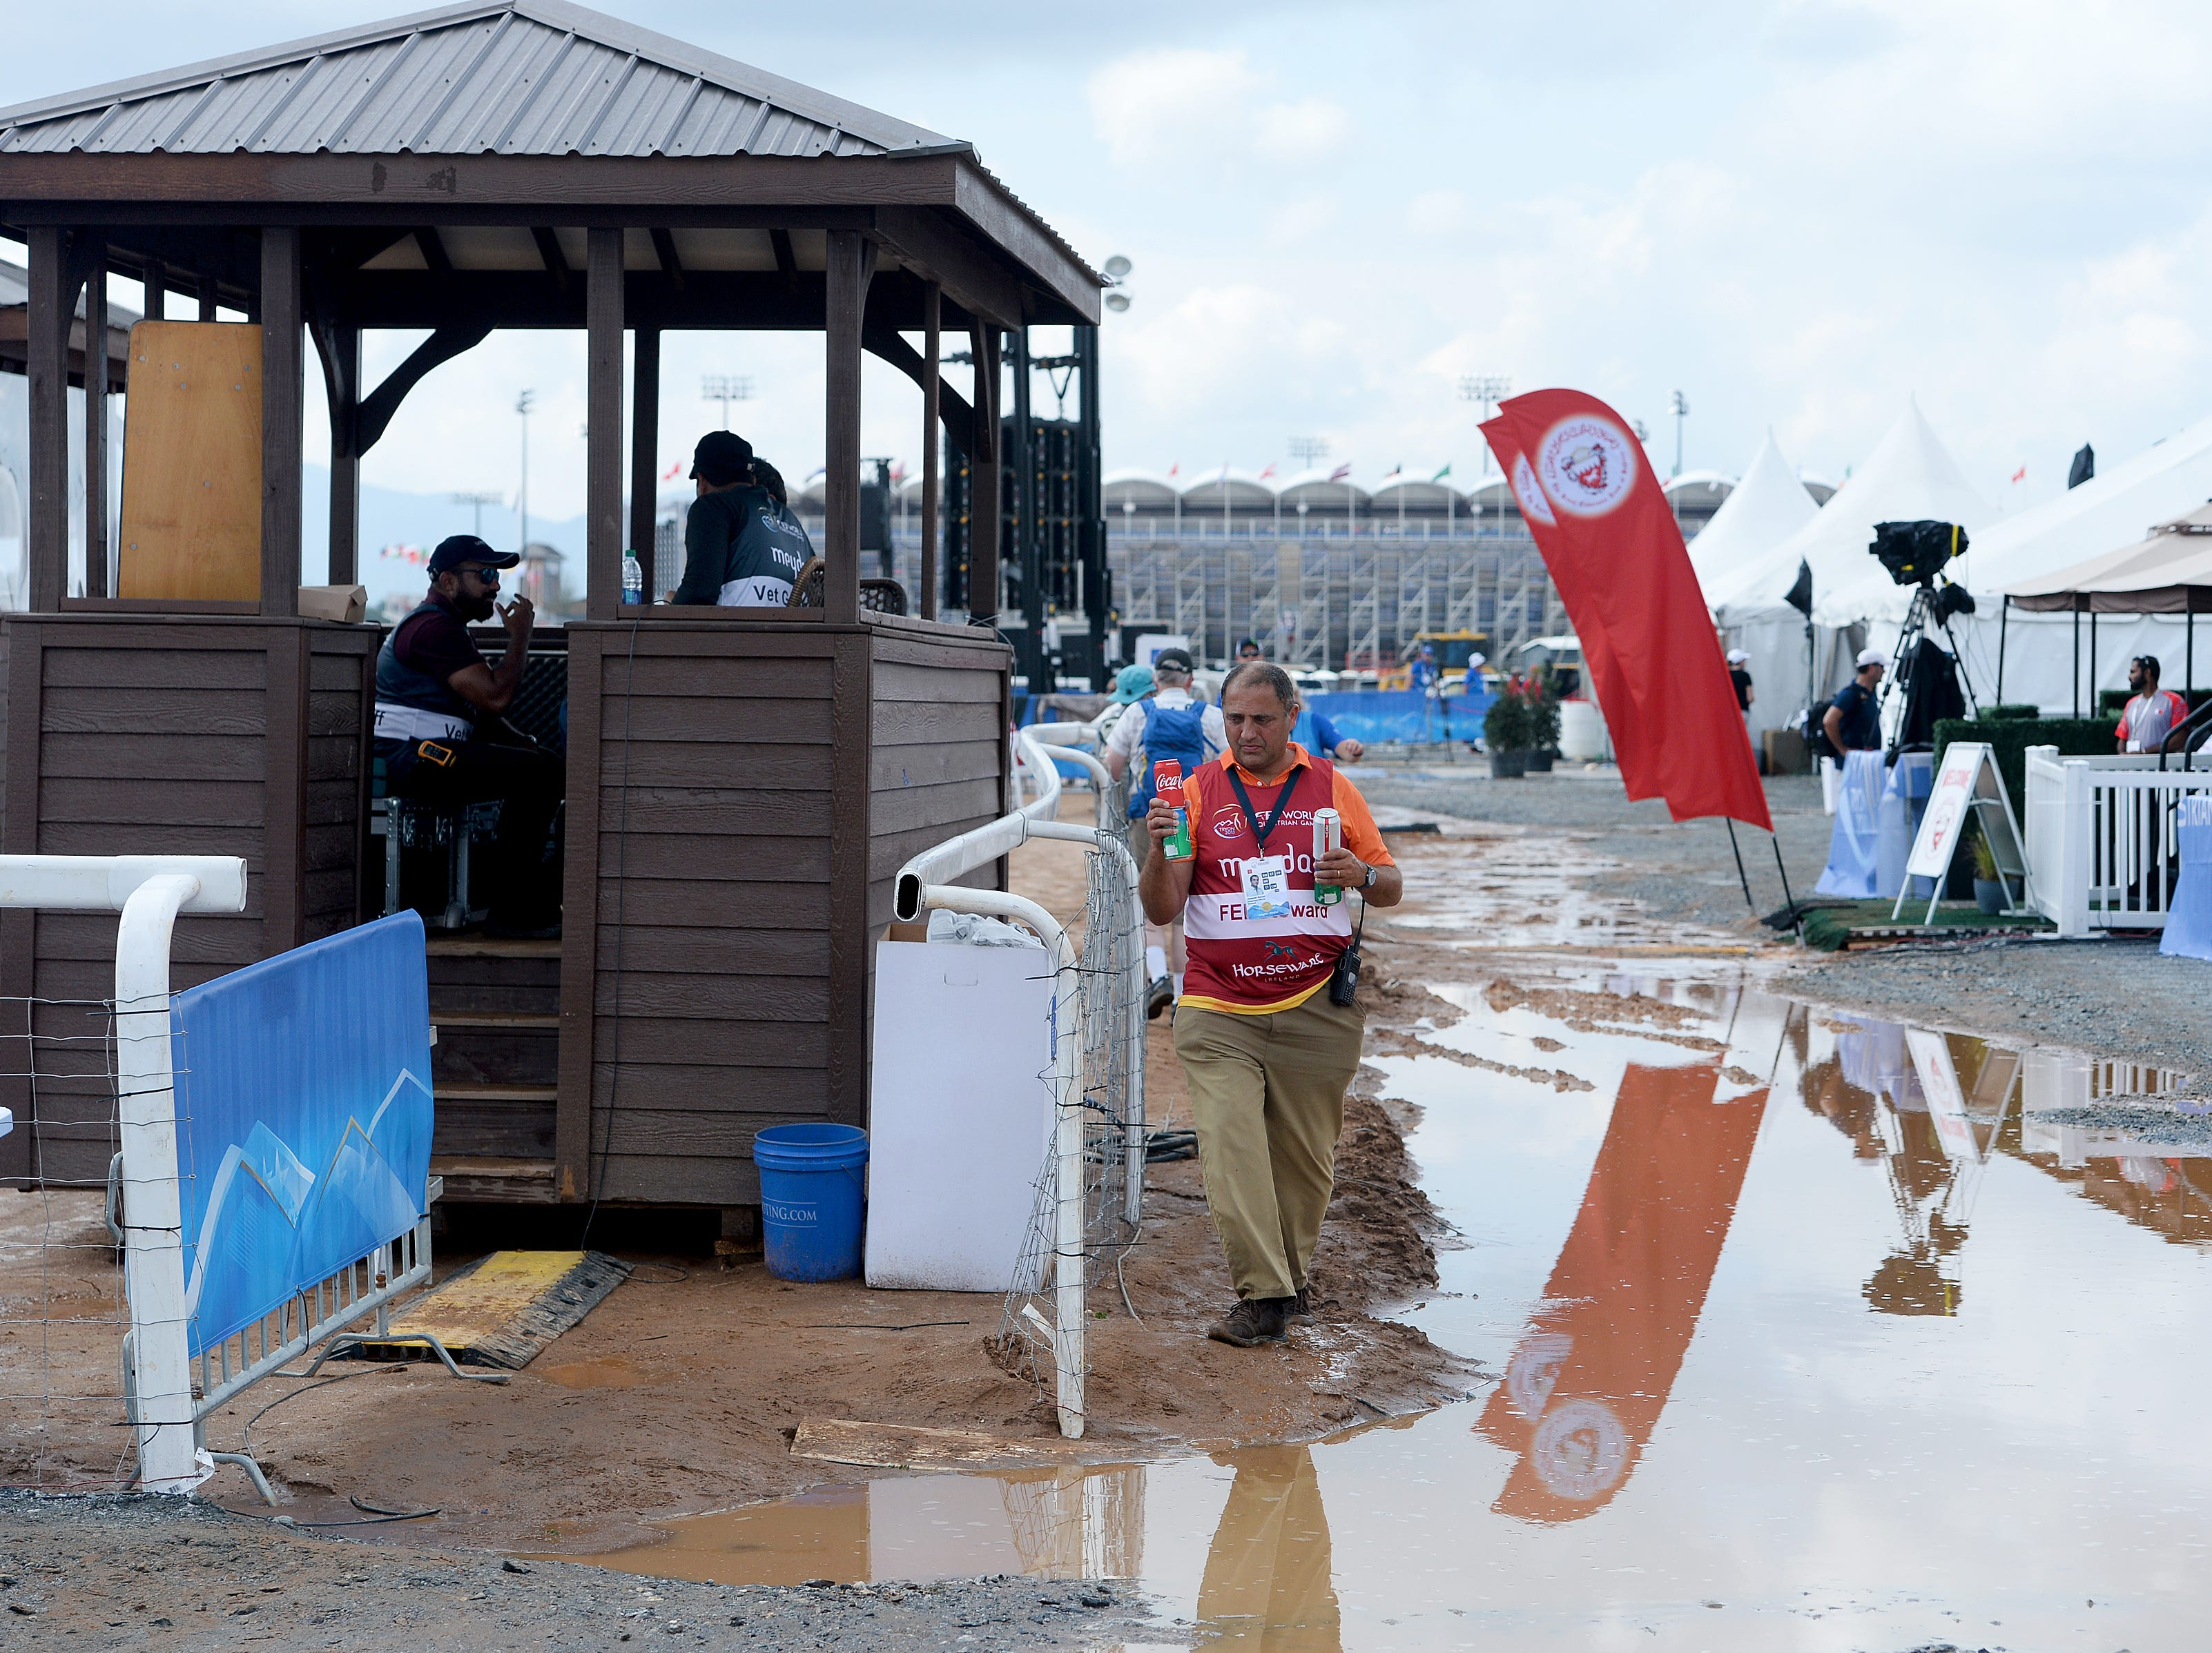 An official makes his way around a large puddle at the Endurance course during the FEI World Equestrian Games at the Tryon International Equestrian Center on Sept. 12, 2018.